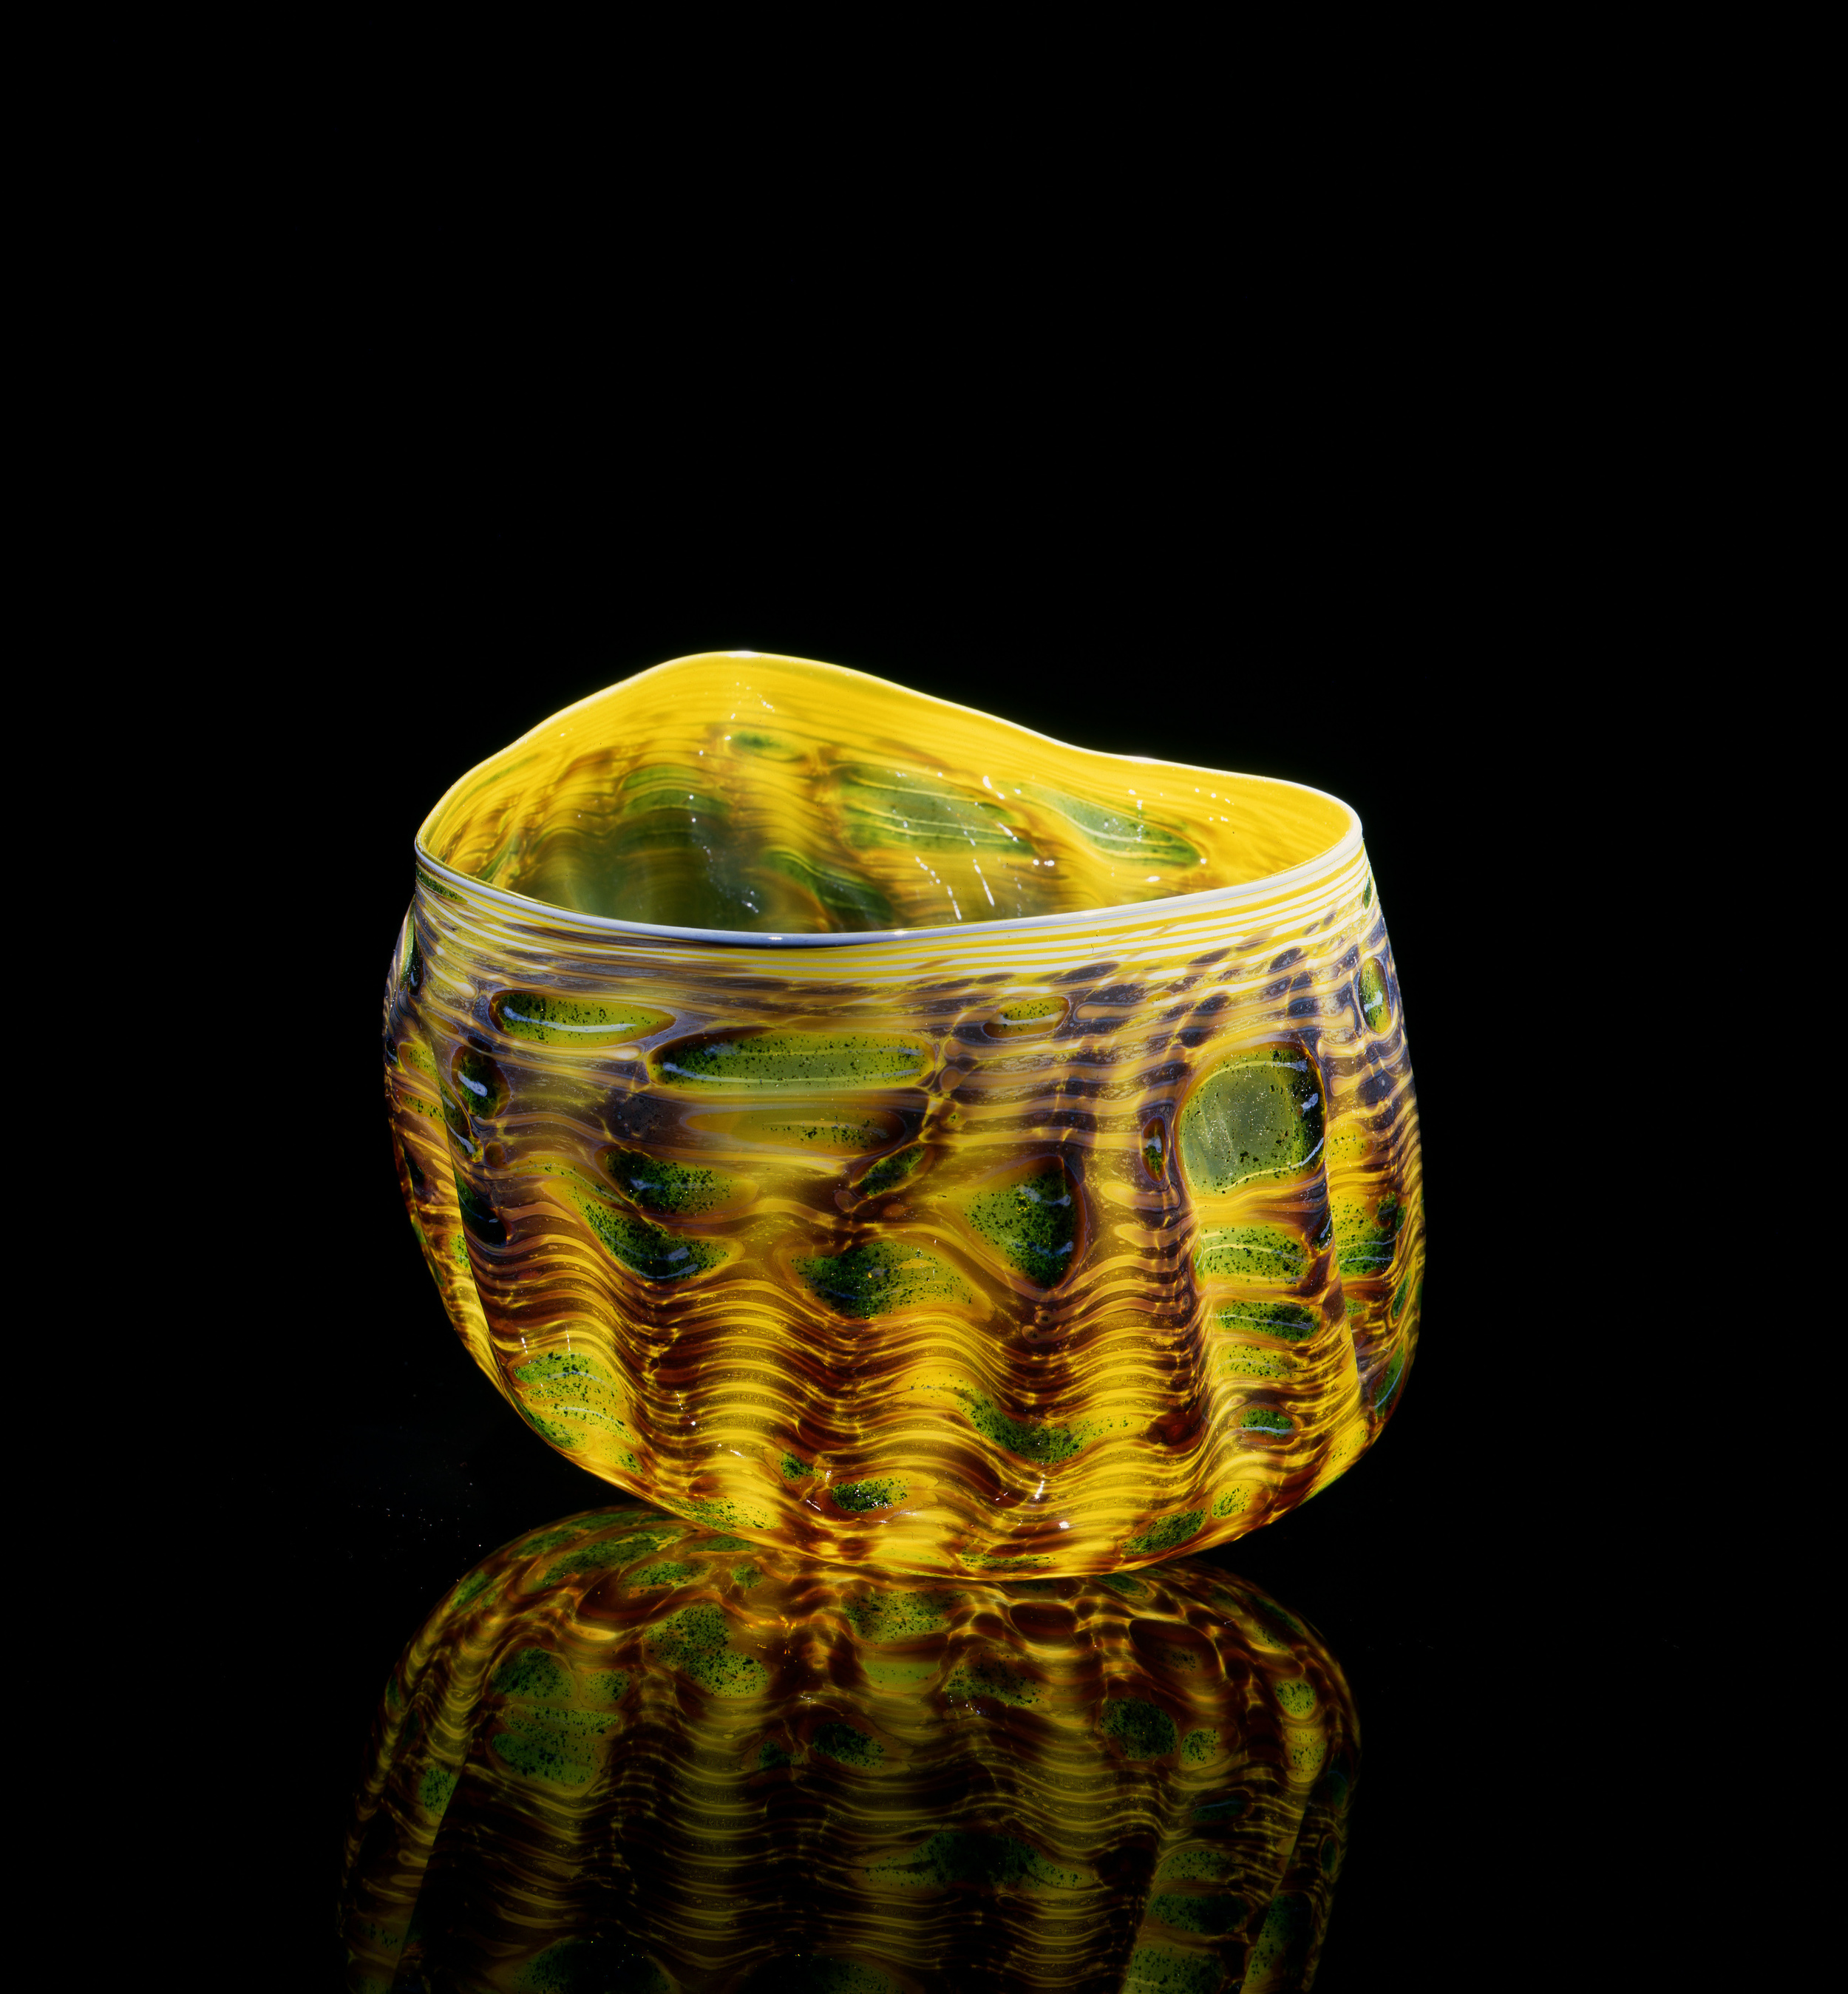 Dale Chihuly, Yellow Green Macchia with Teal Powder Lip Wrap (1981, glass, 7 x 8 x 8inches), DC.102